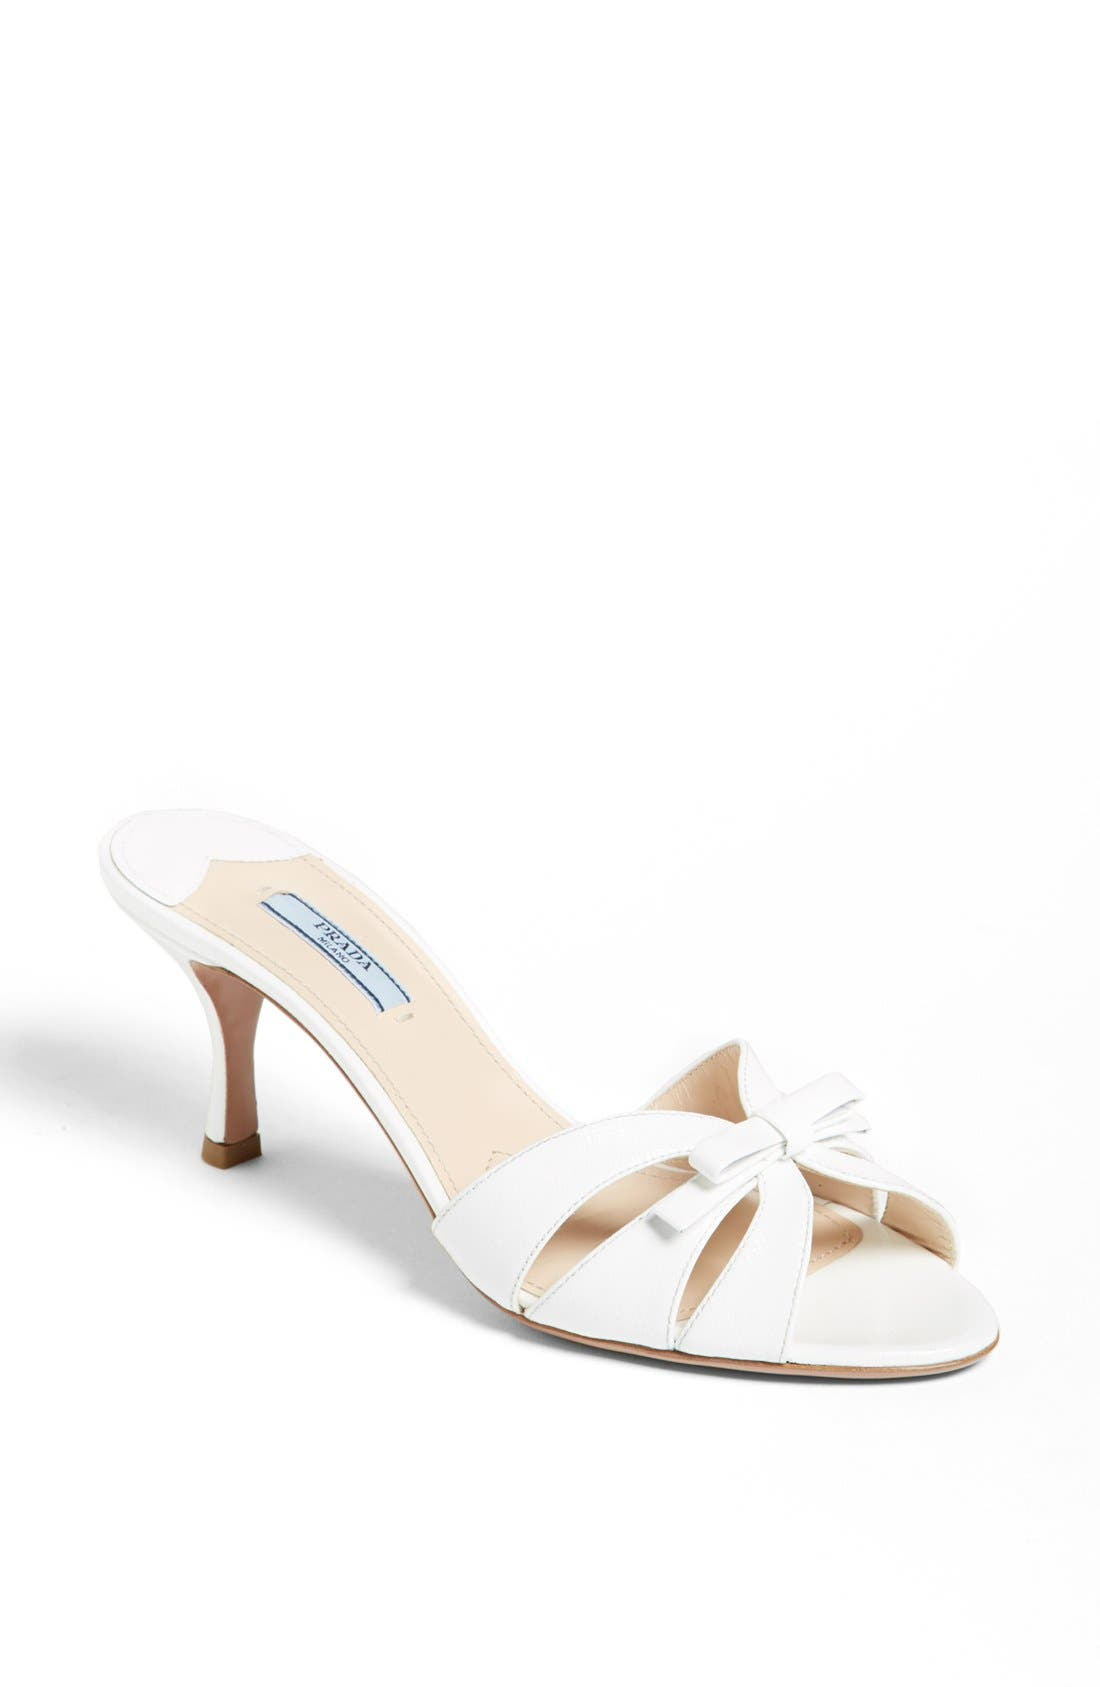 Alternate Image 1 Selected - Prada Bow Slide Sandal